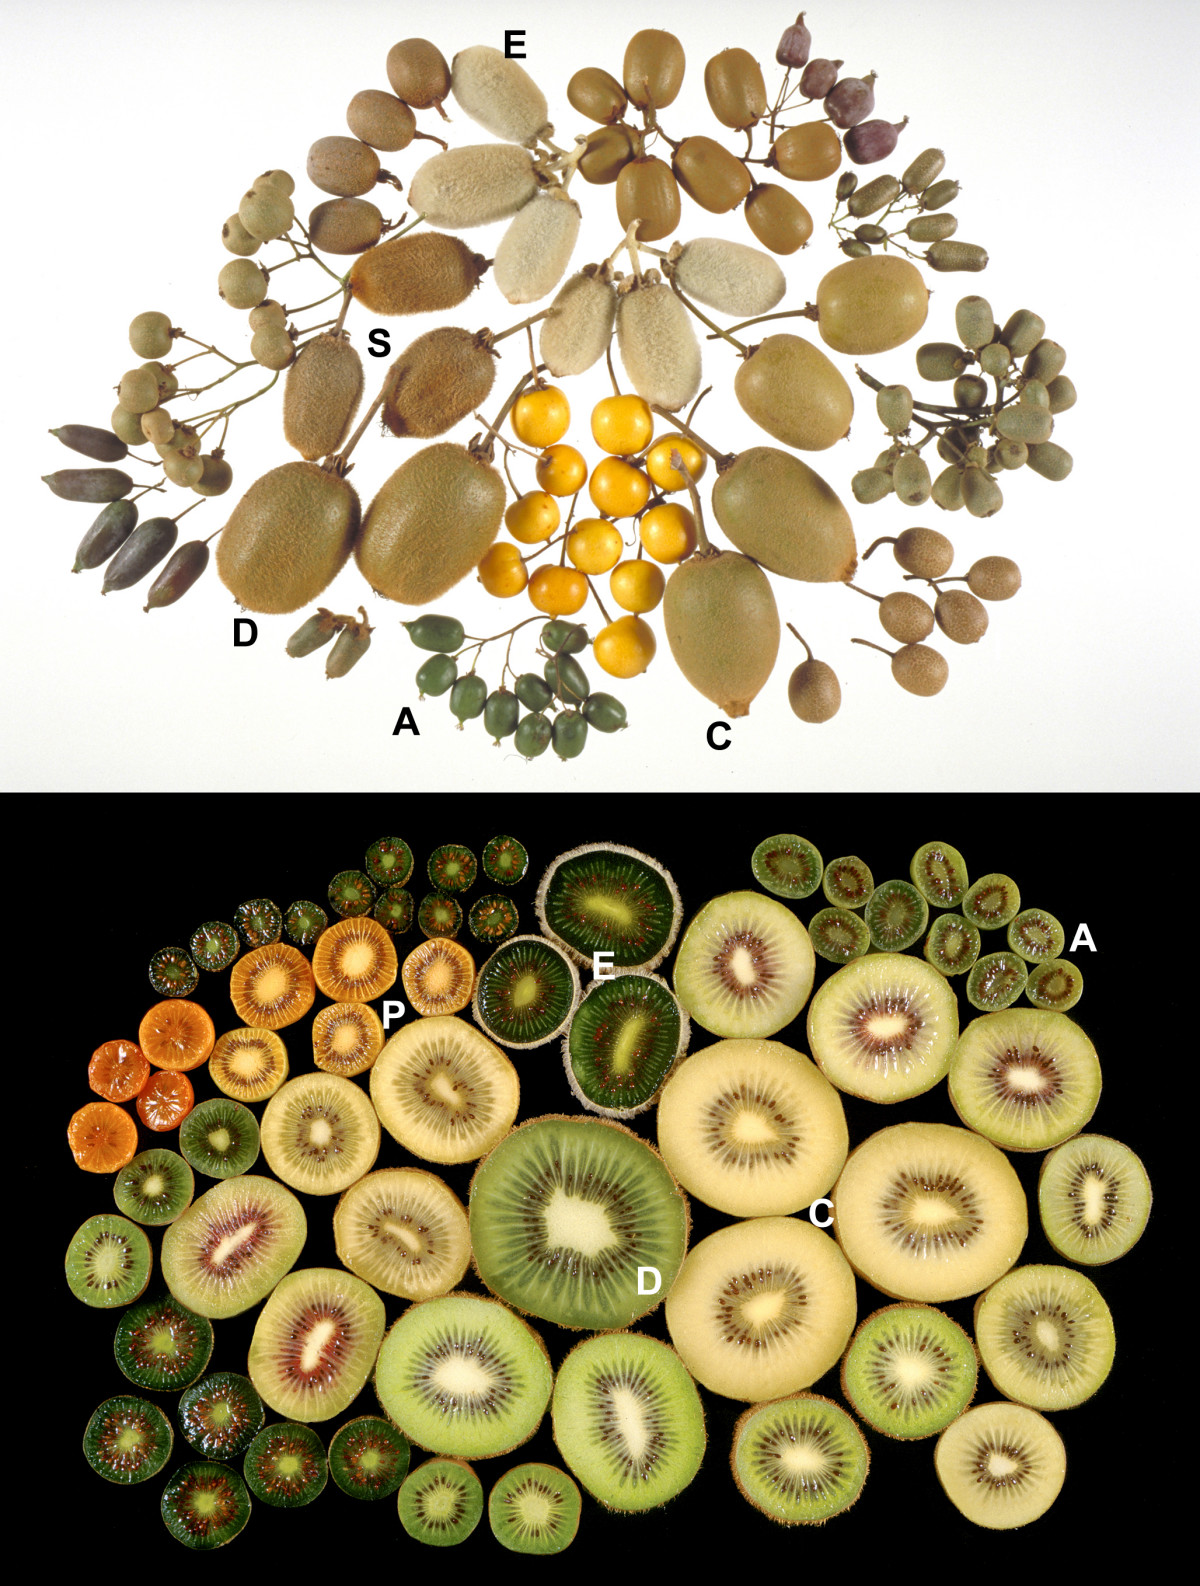 Fruits of different species af Actinidia.